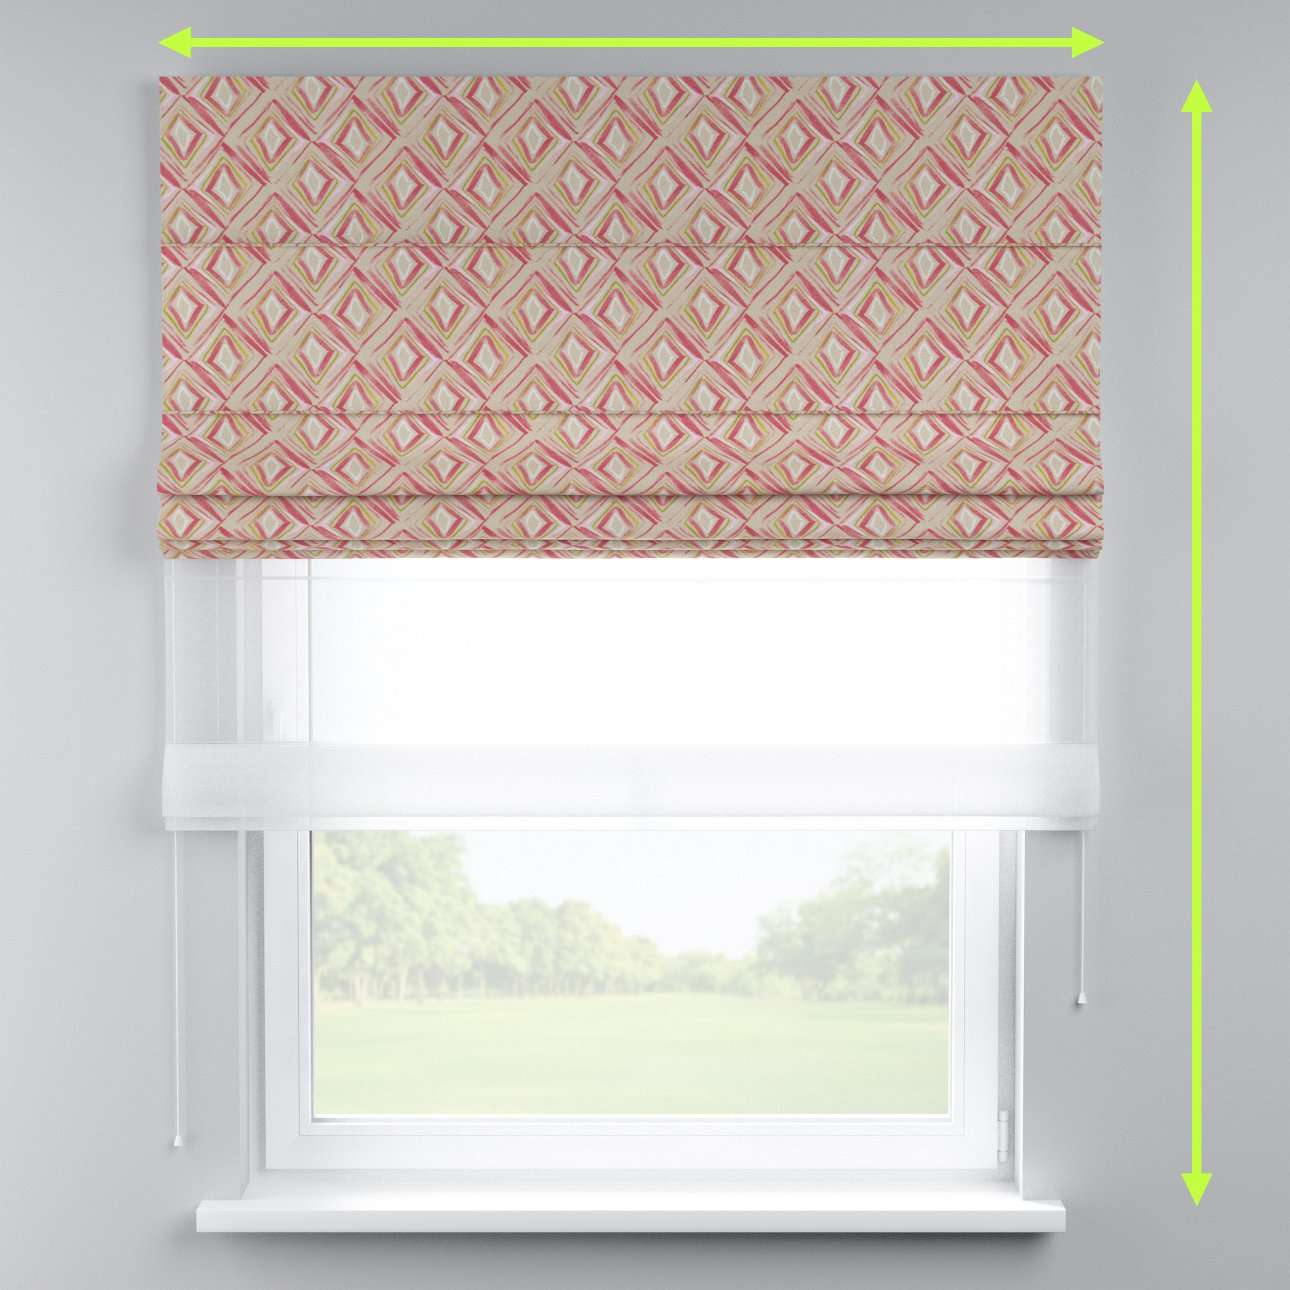 Voile and fabric roman blind (DUO II) in collection Londres, fabric: 140-45